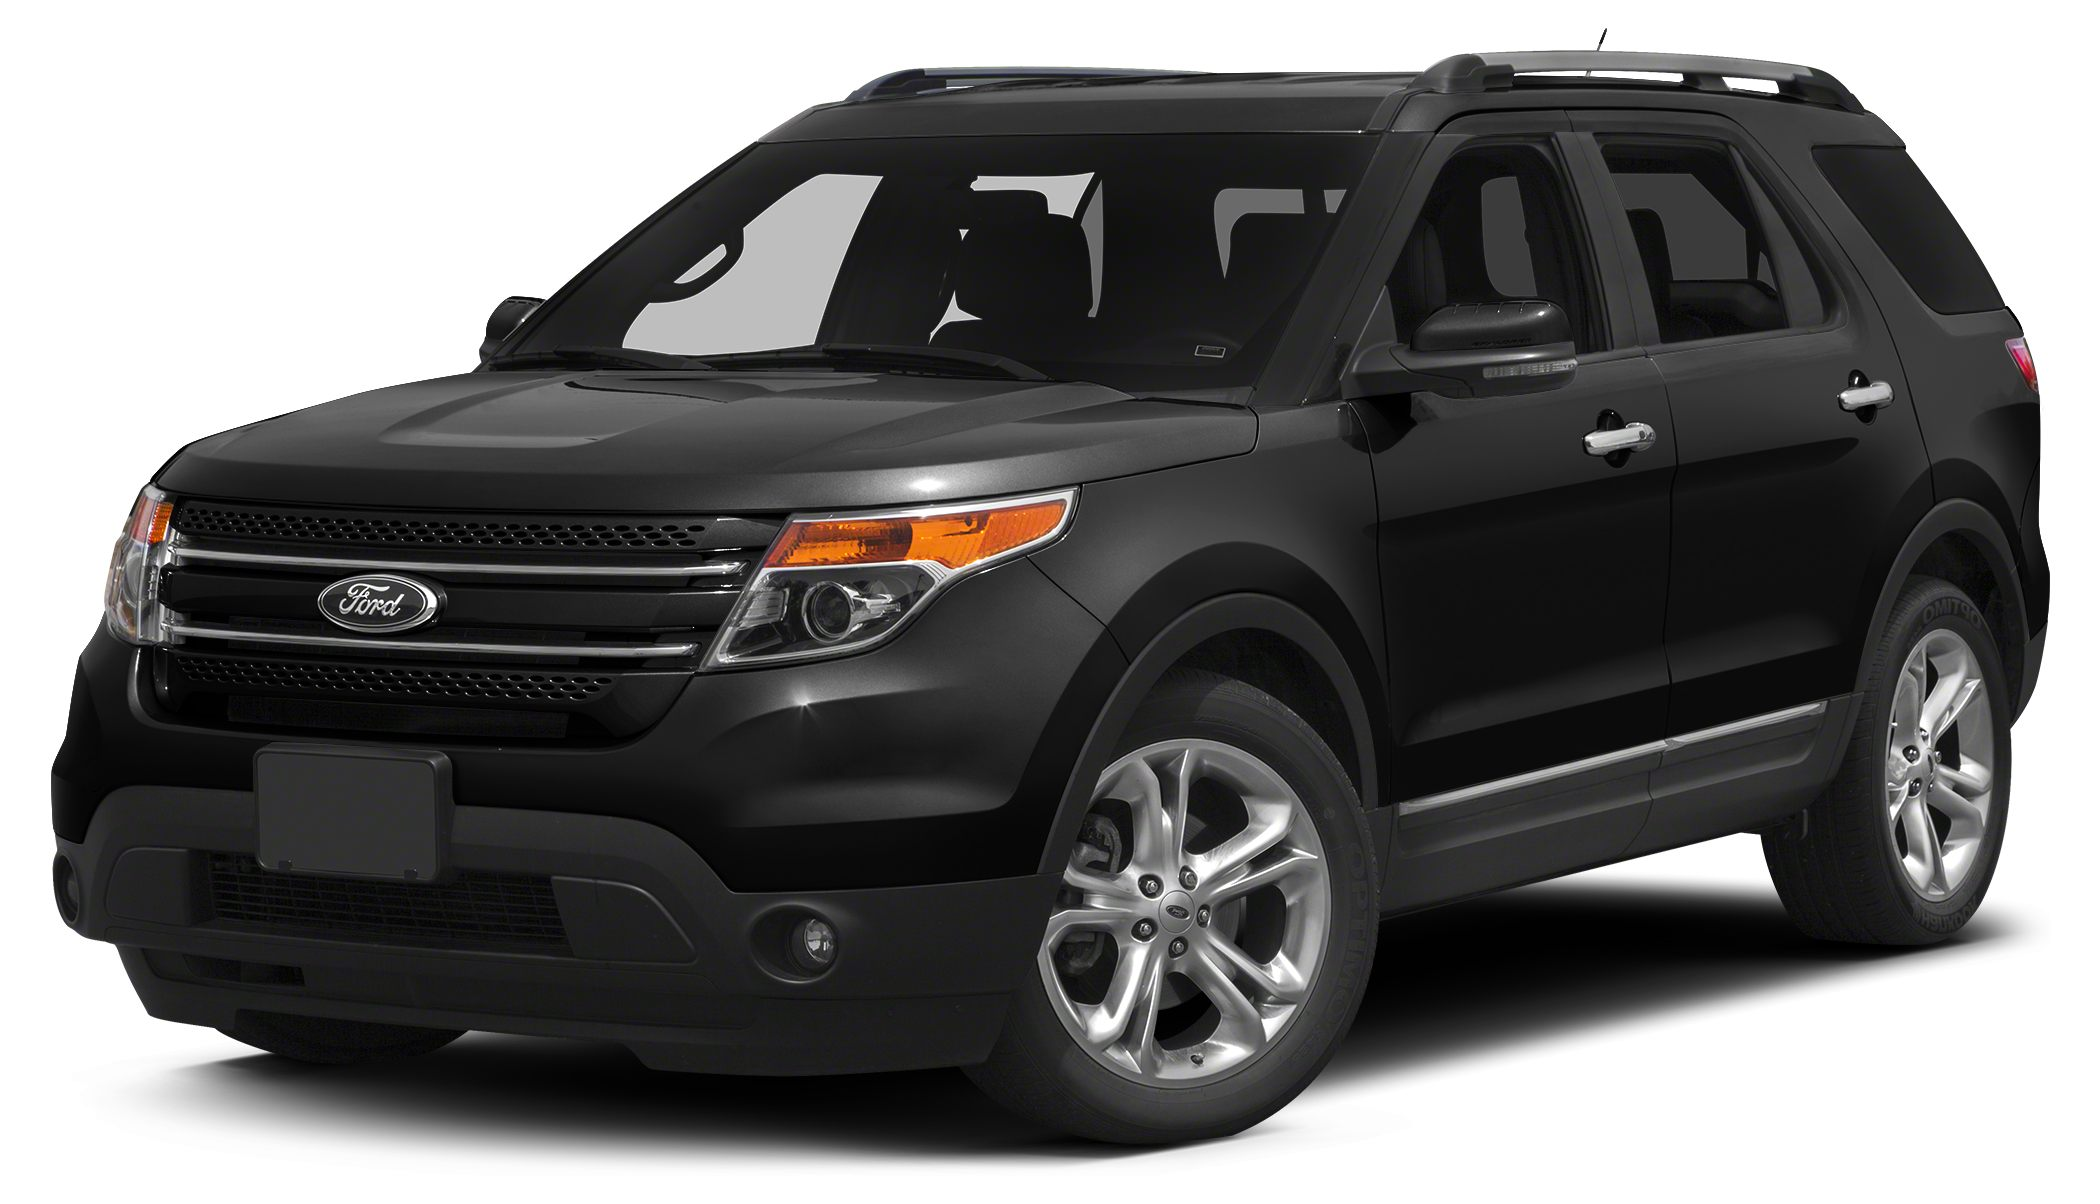 2013 Ford Explorer Limited Ford Certified Excellent Condition PRICED TO MOVE 3600 below NADA Re